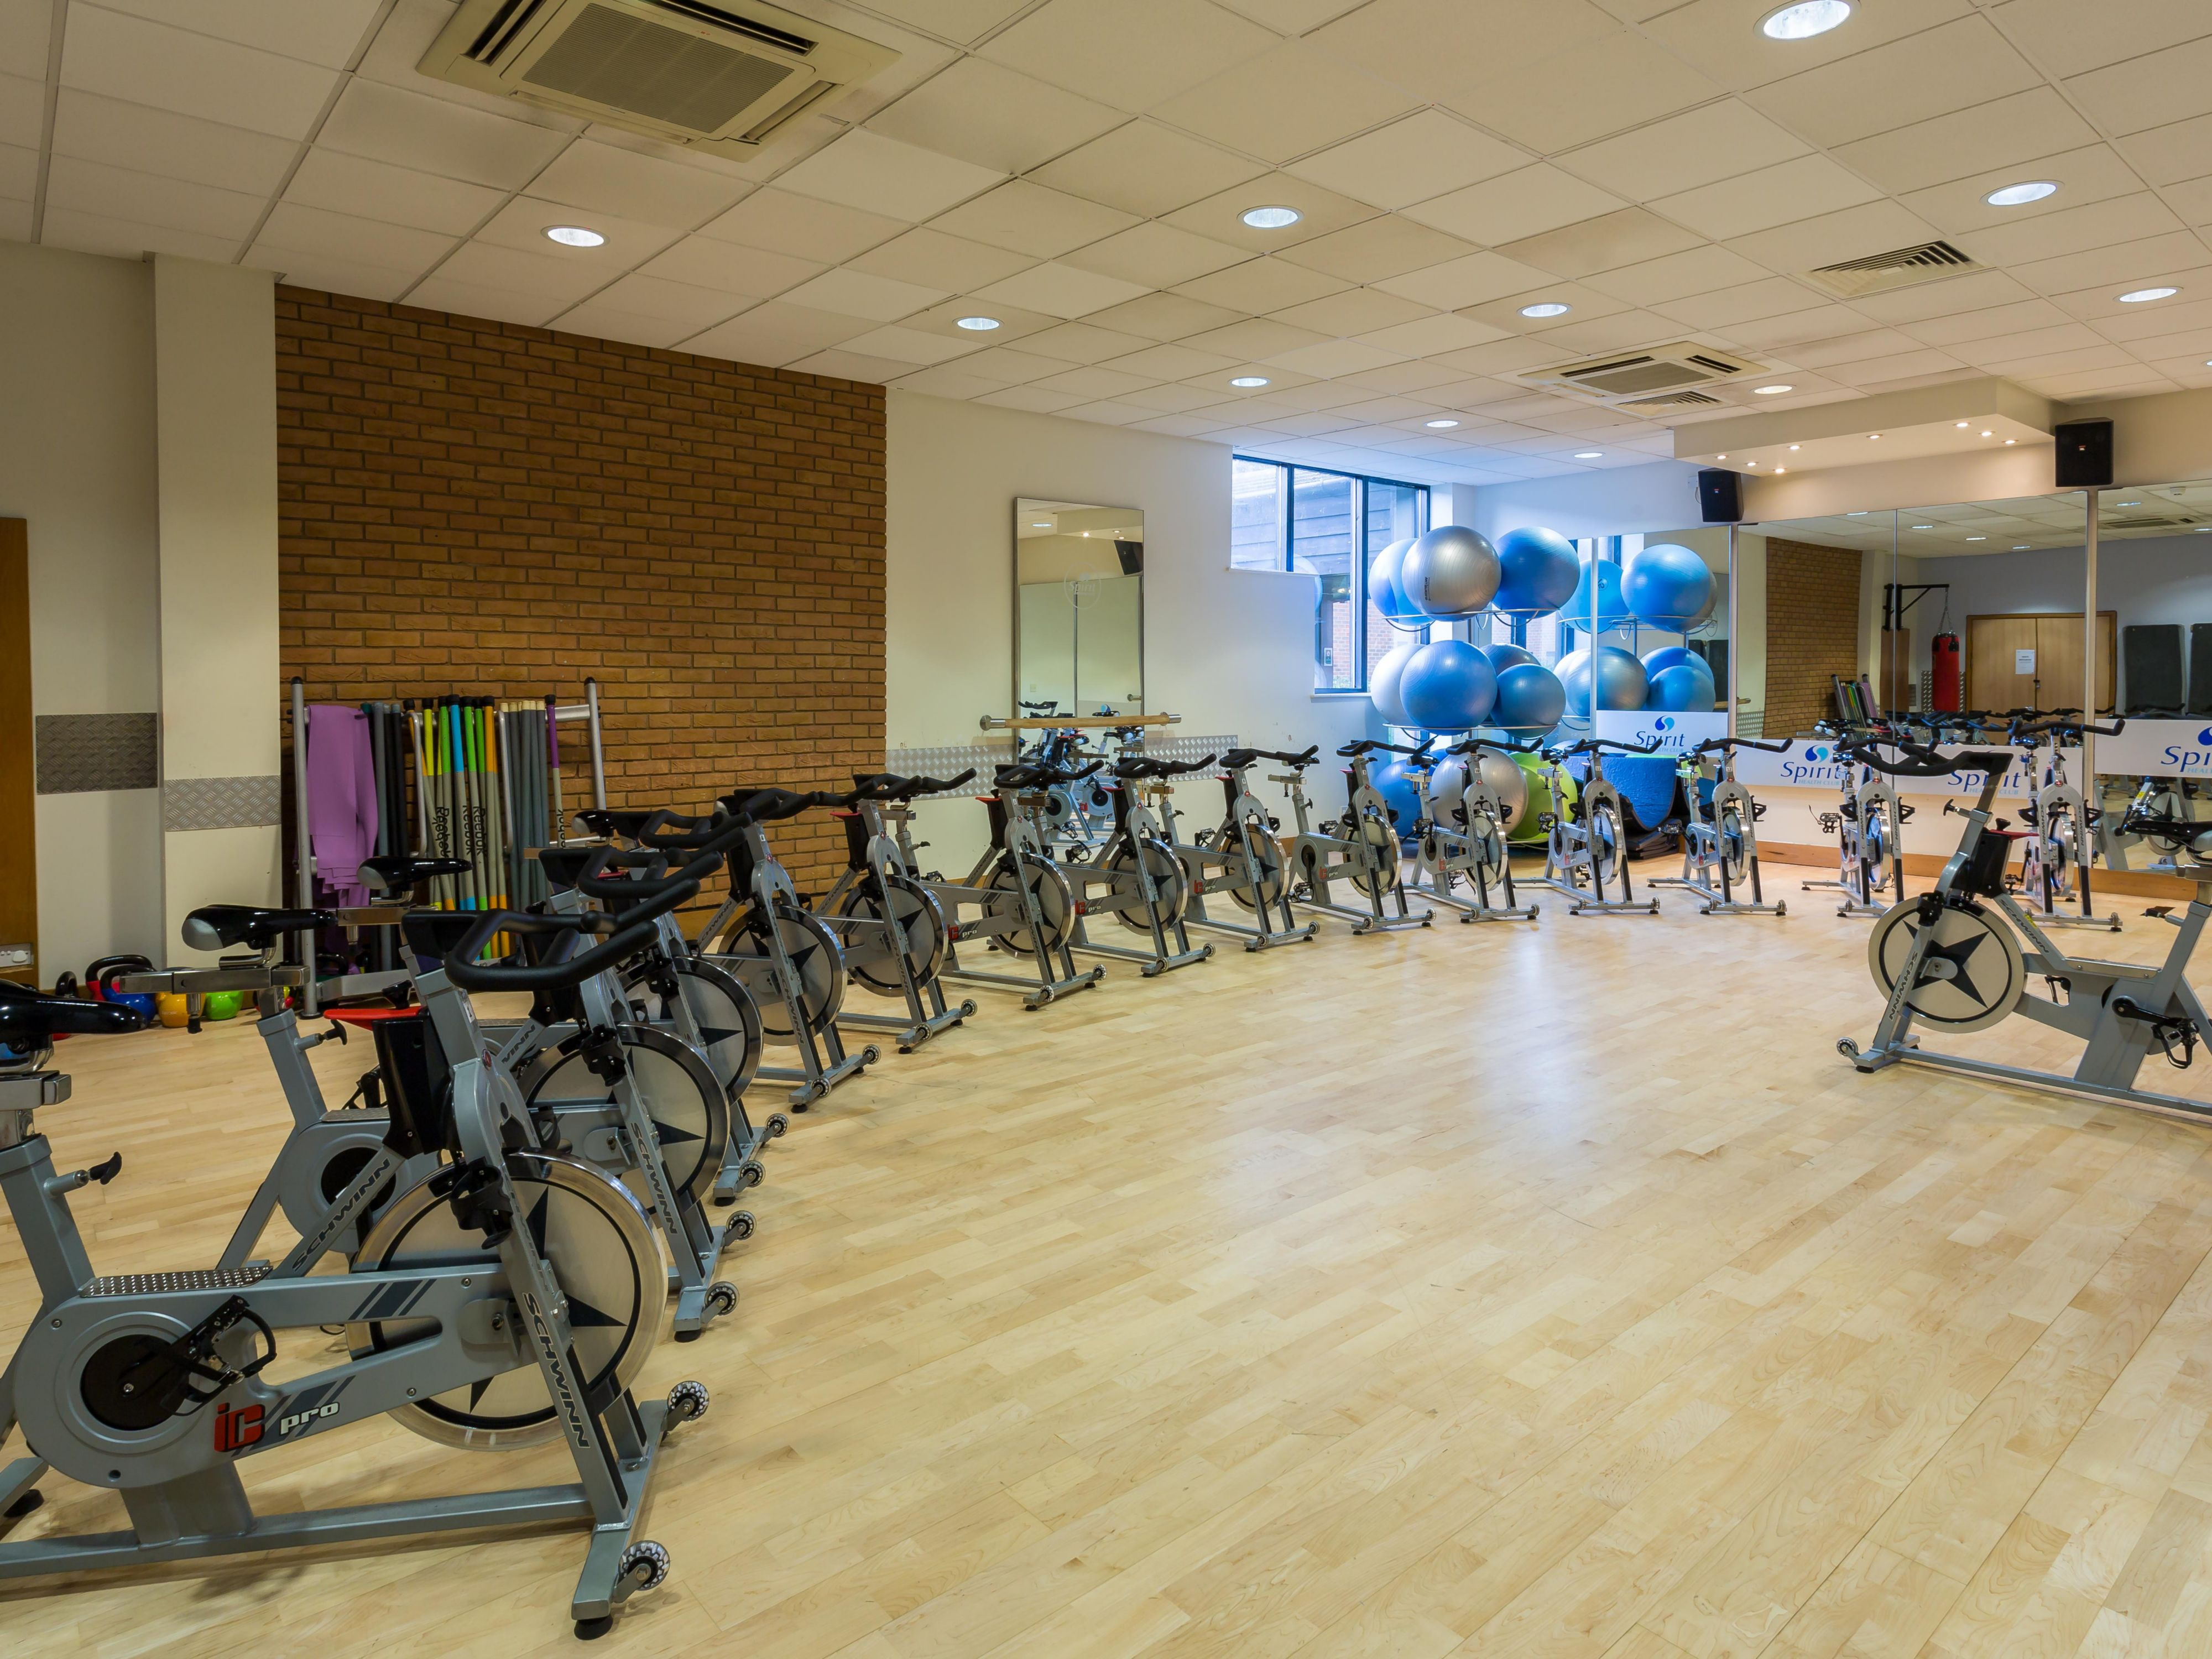 Stay in shape at our Fitness Studio